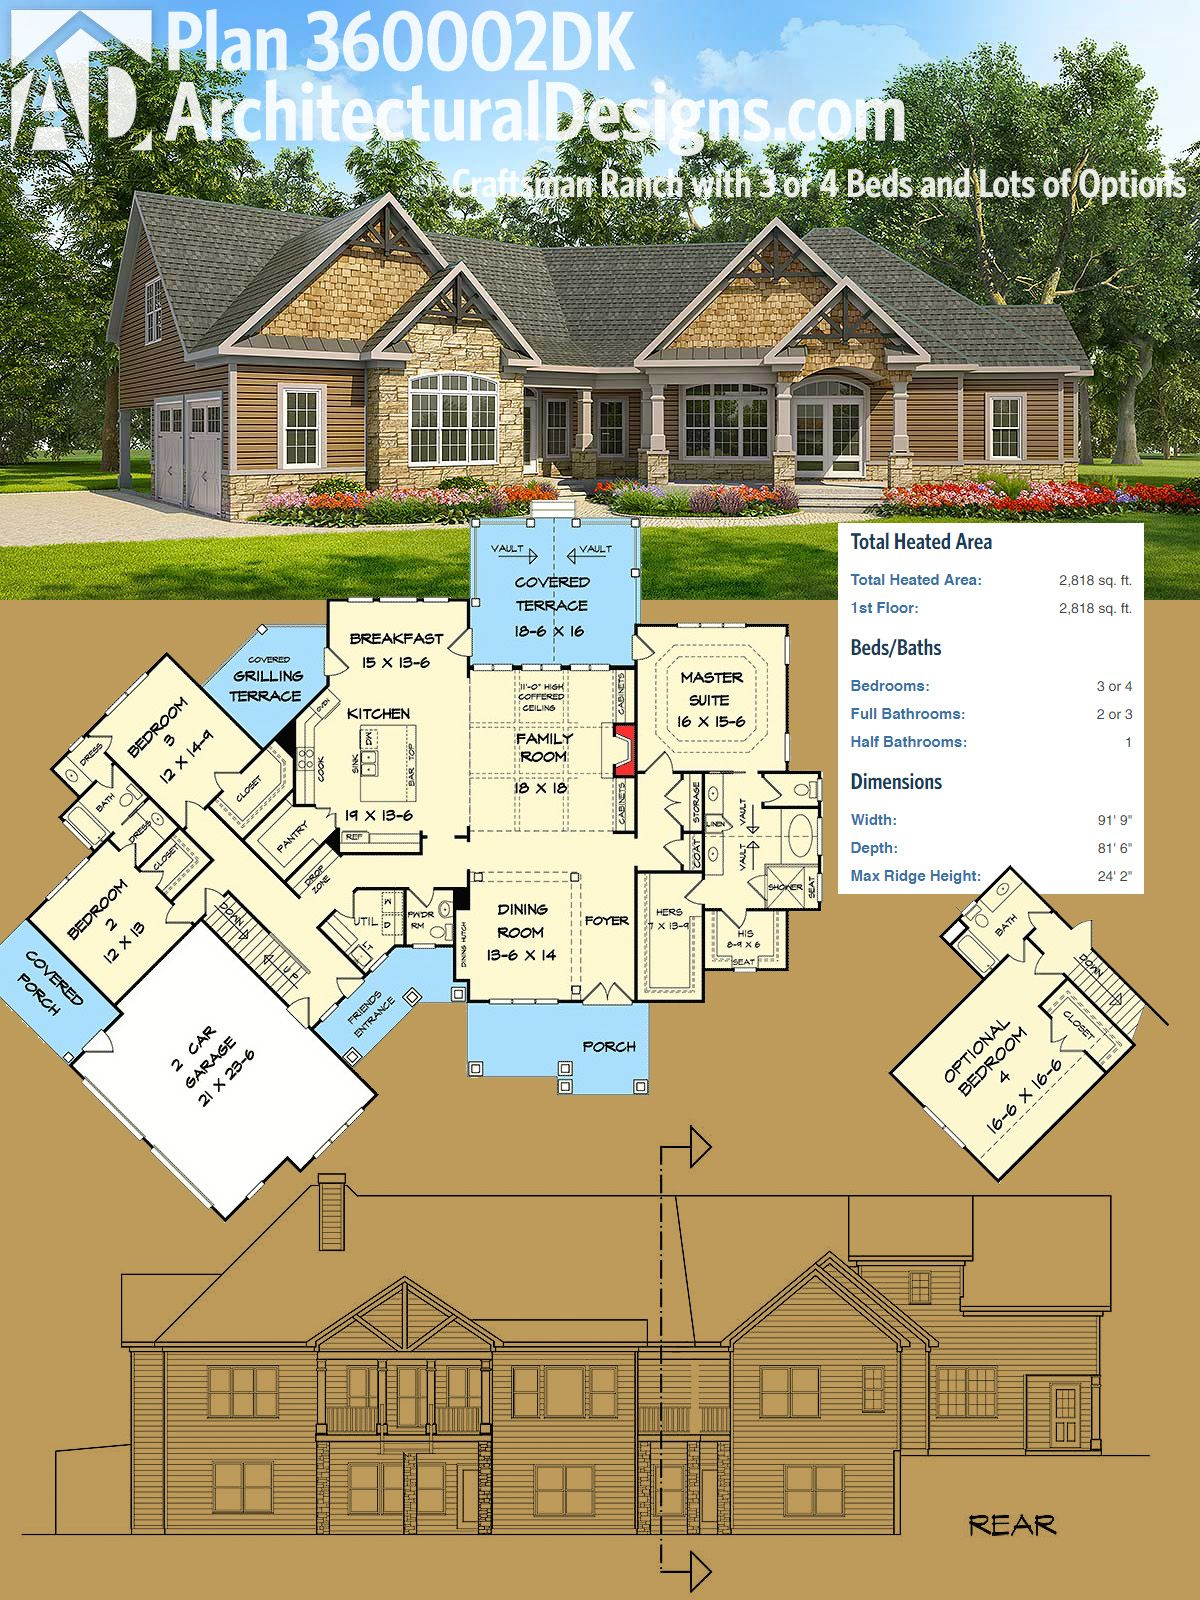 Architectural Designs Craftsman House Plan 360002DK has an angled     Architectural Designs Craftsman House Plan 360002DK has an angled garage  a split  bedroom layout and a bonus room over the garage  Over 2 800 square feet of